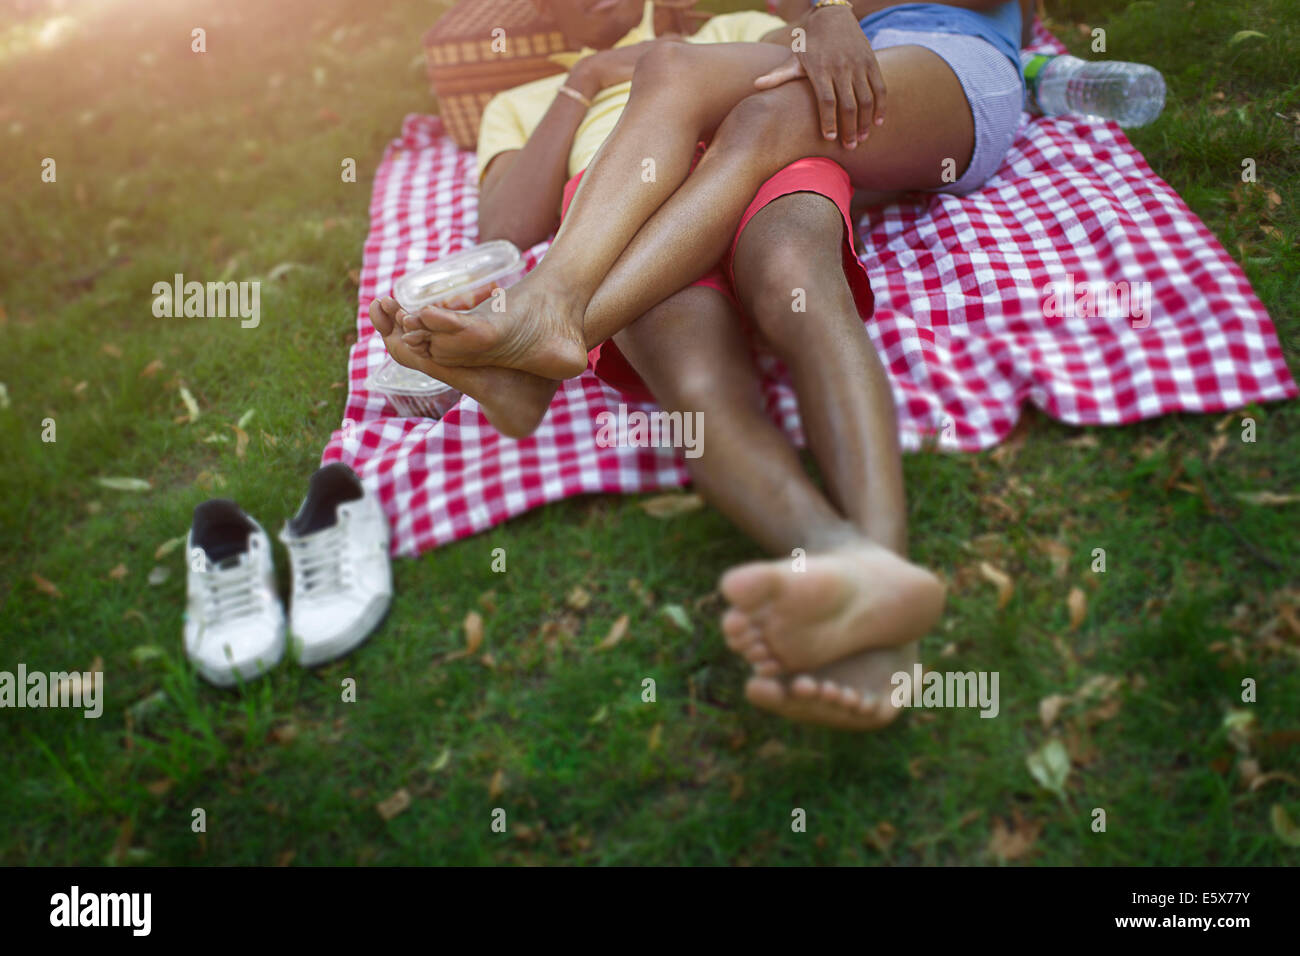 Cropped image of young couple in lying in park on picnic blanket - Stock Image